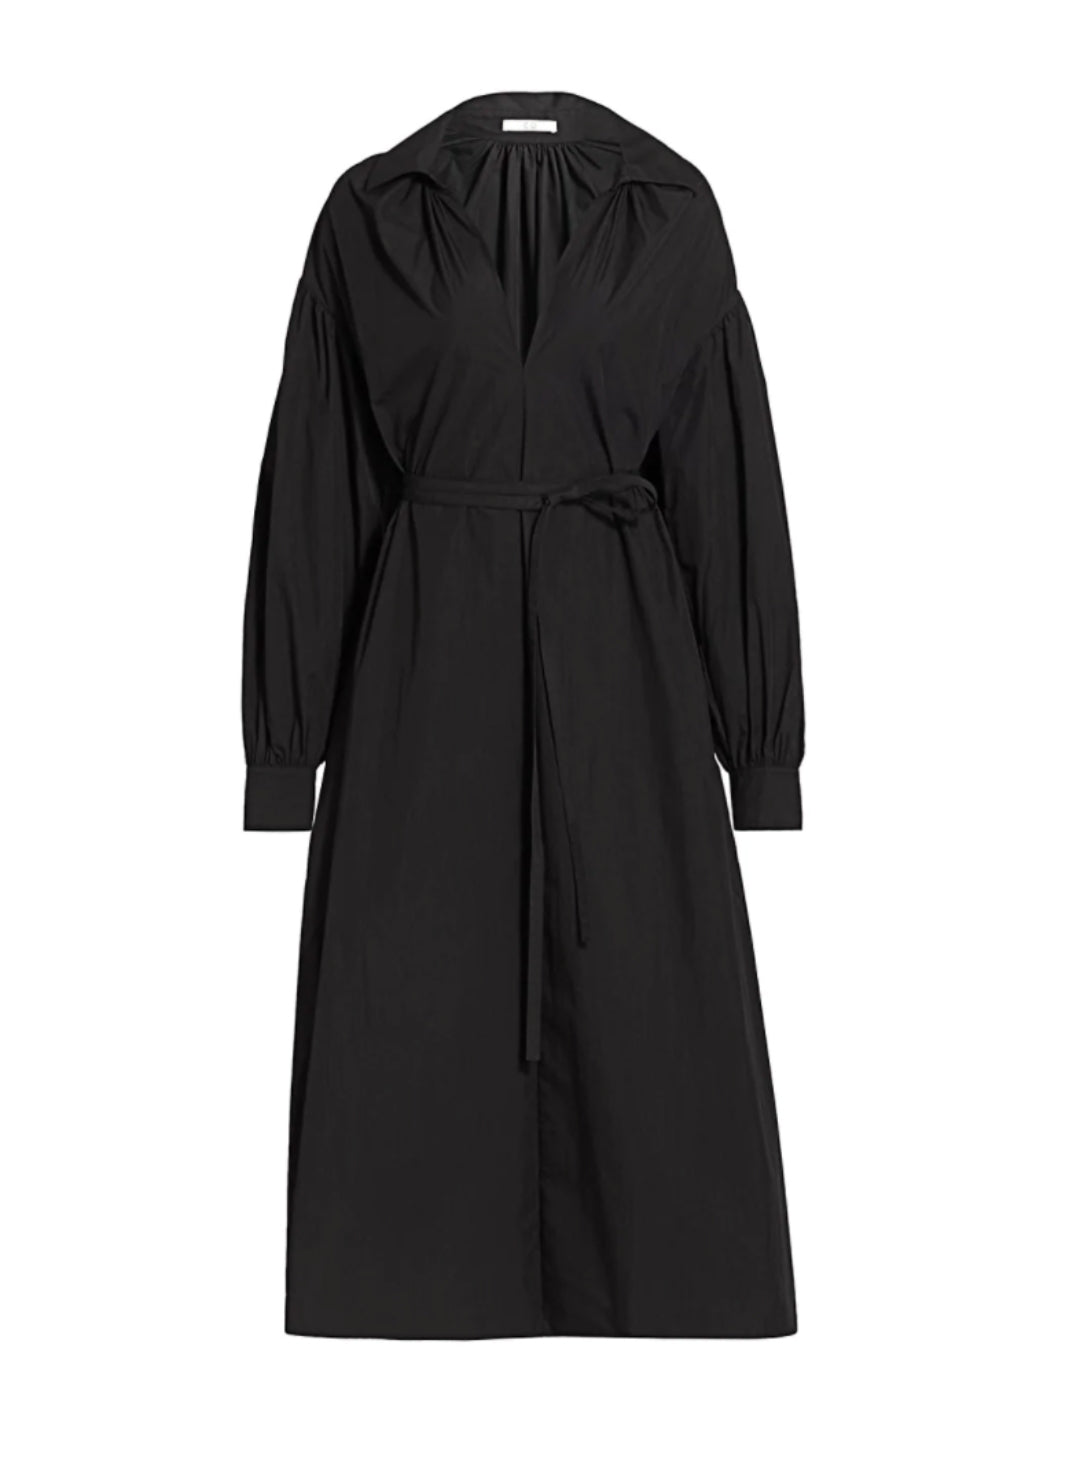 V NECK COLLARED ROBE SLIT DRESS (PRE ORDER)